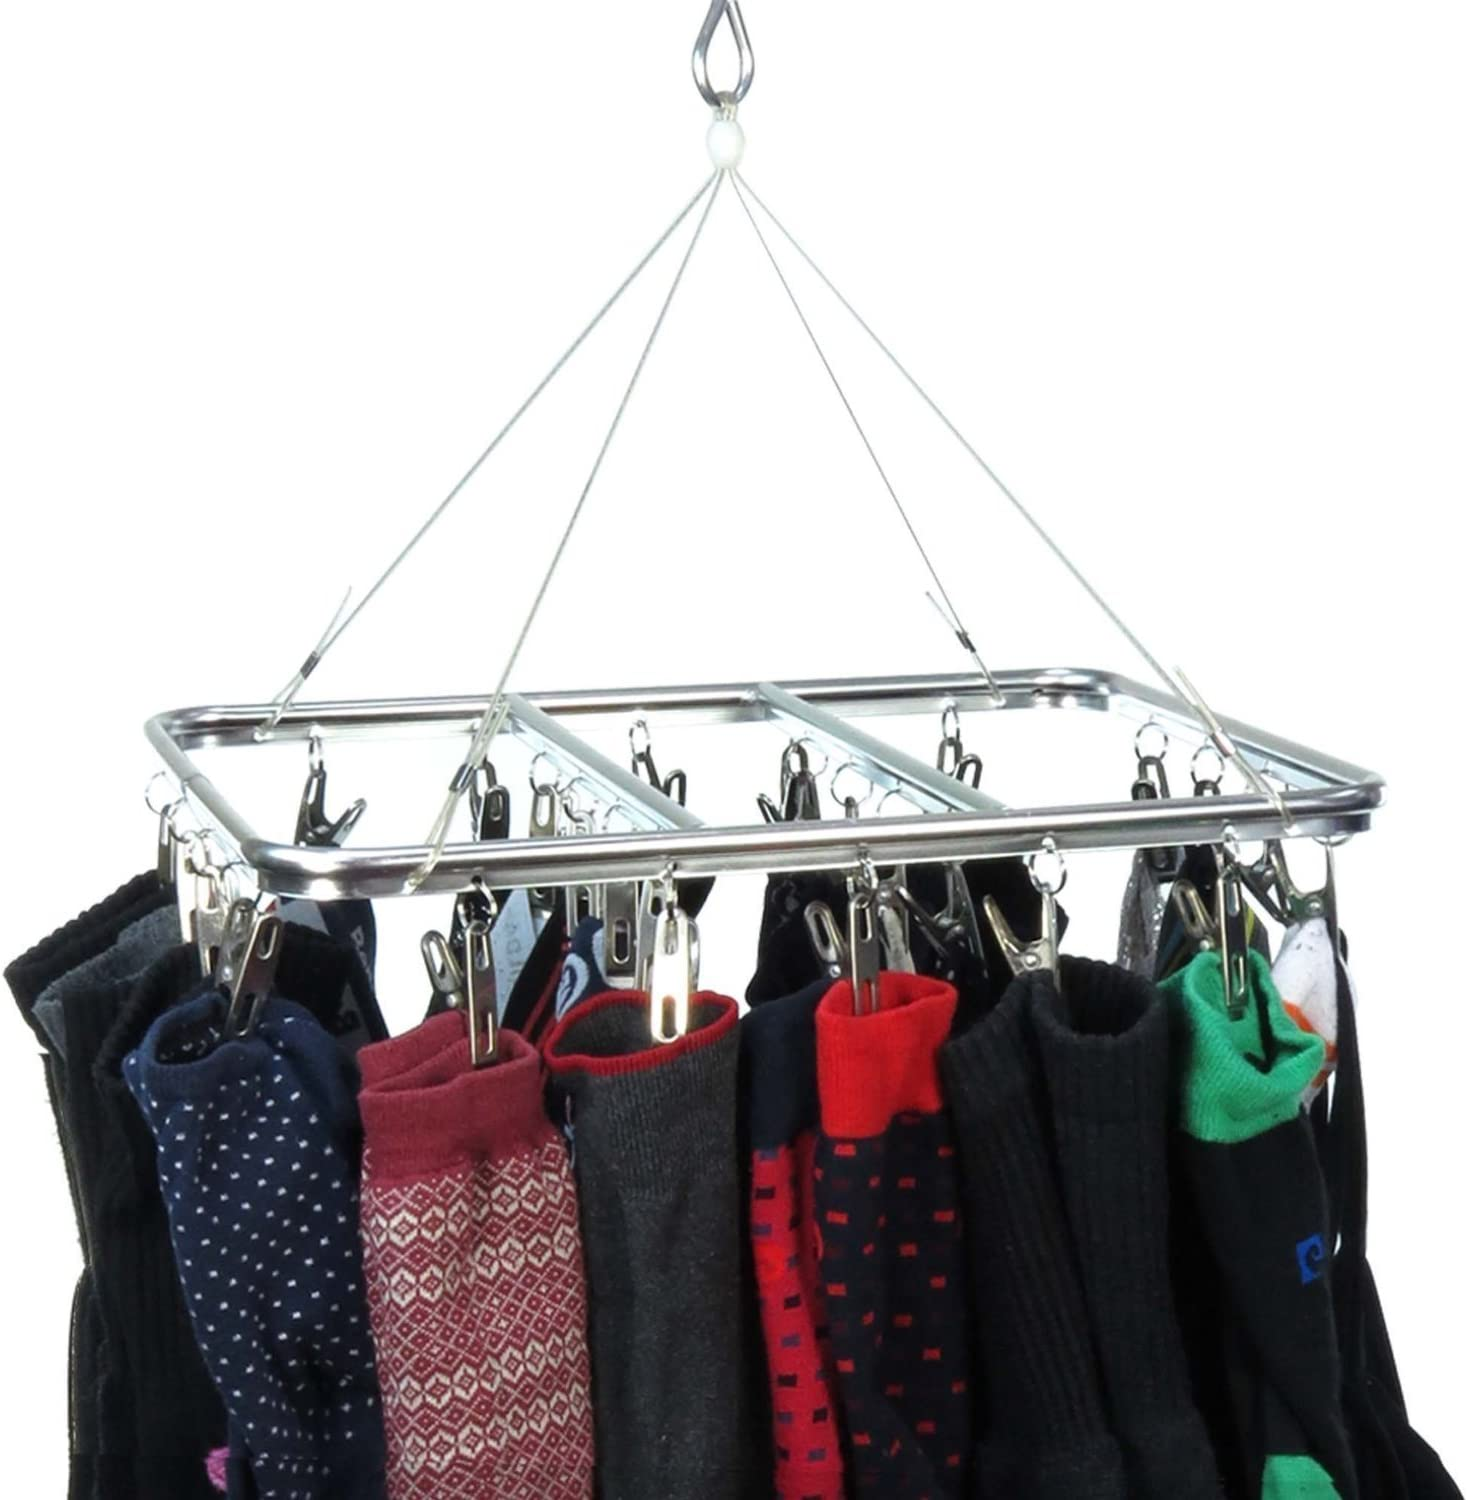 HANGERWORLD 26 Peg Aluminium Hanging Laundry Socks Lingerie Clothes Portable Indoor Outdoor Airer Dryer.